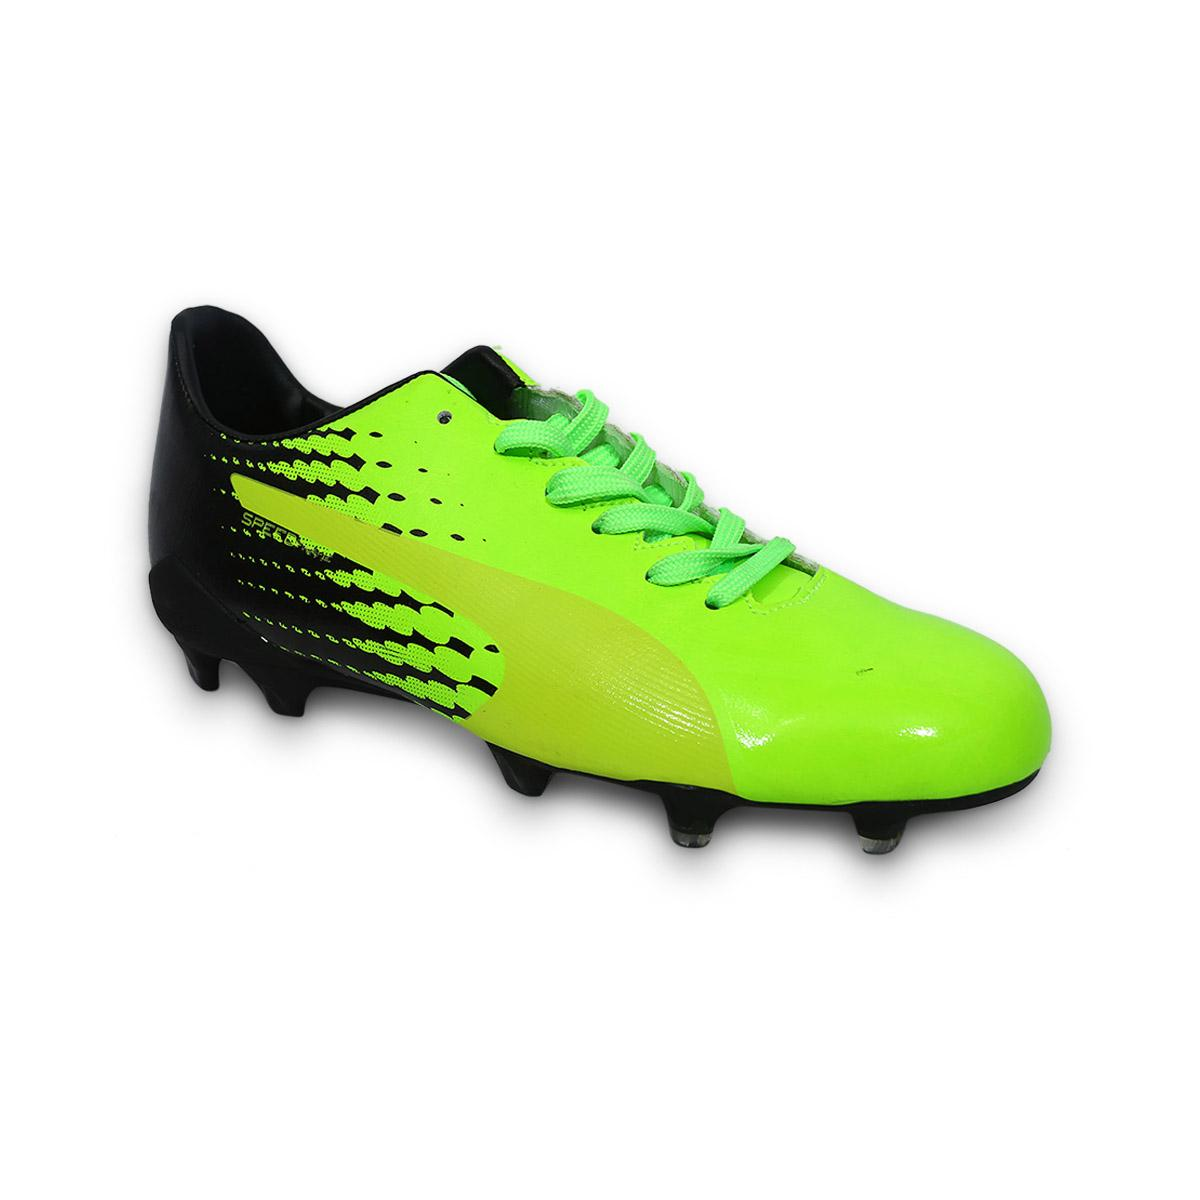 2ab40e99d509 Green and Black PU Rubber Football Boot For Men: Buy Online at Best ...